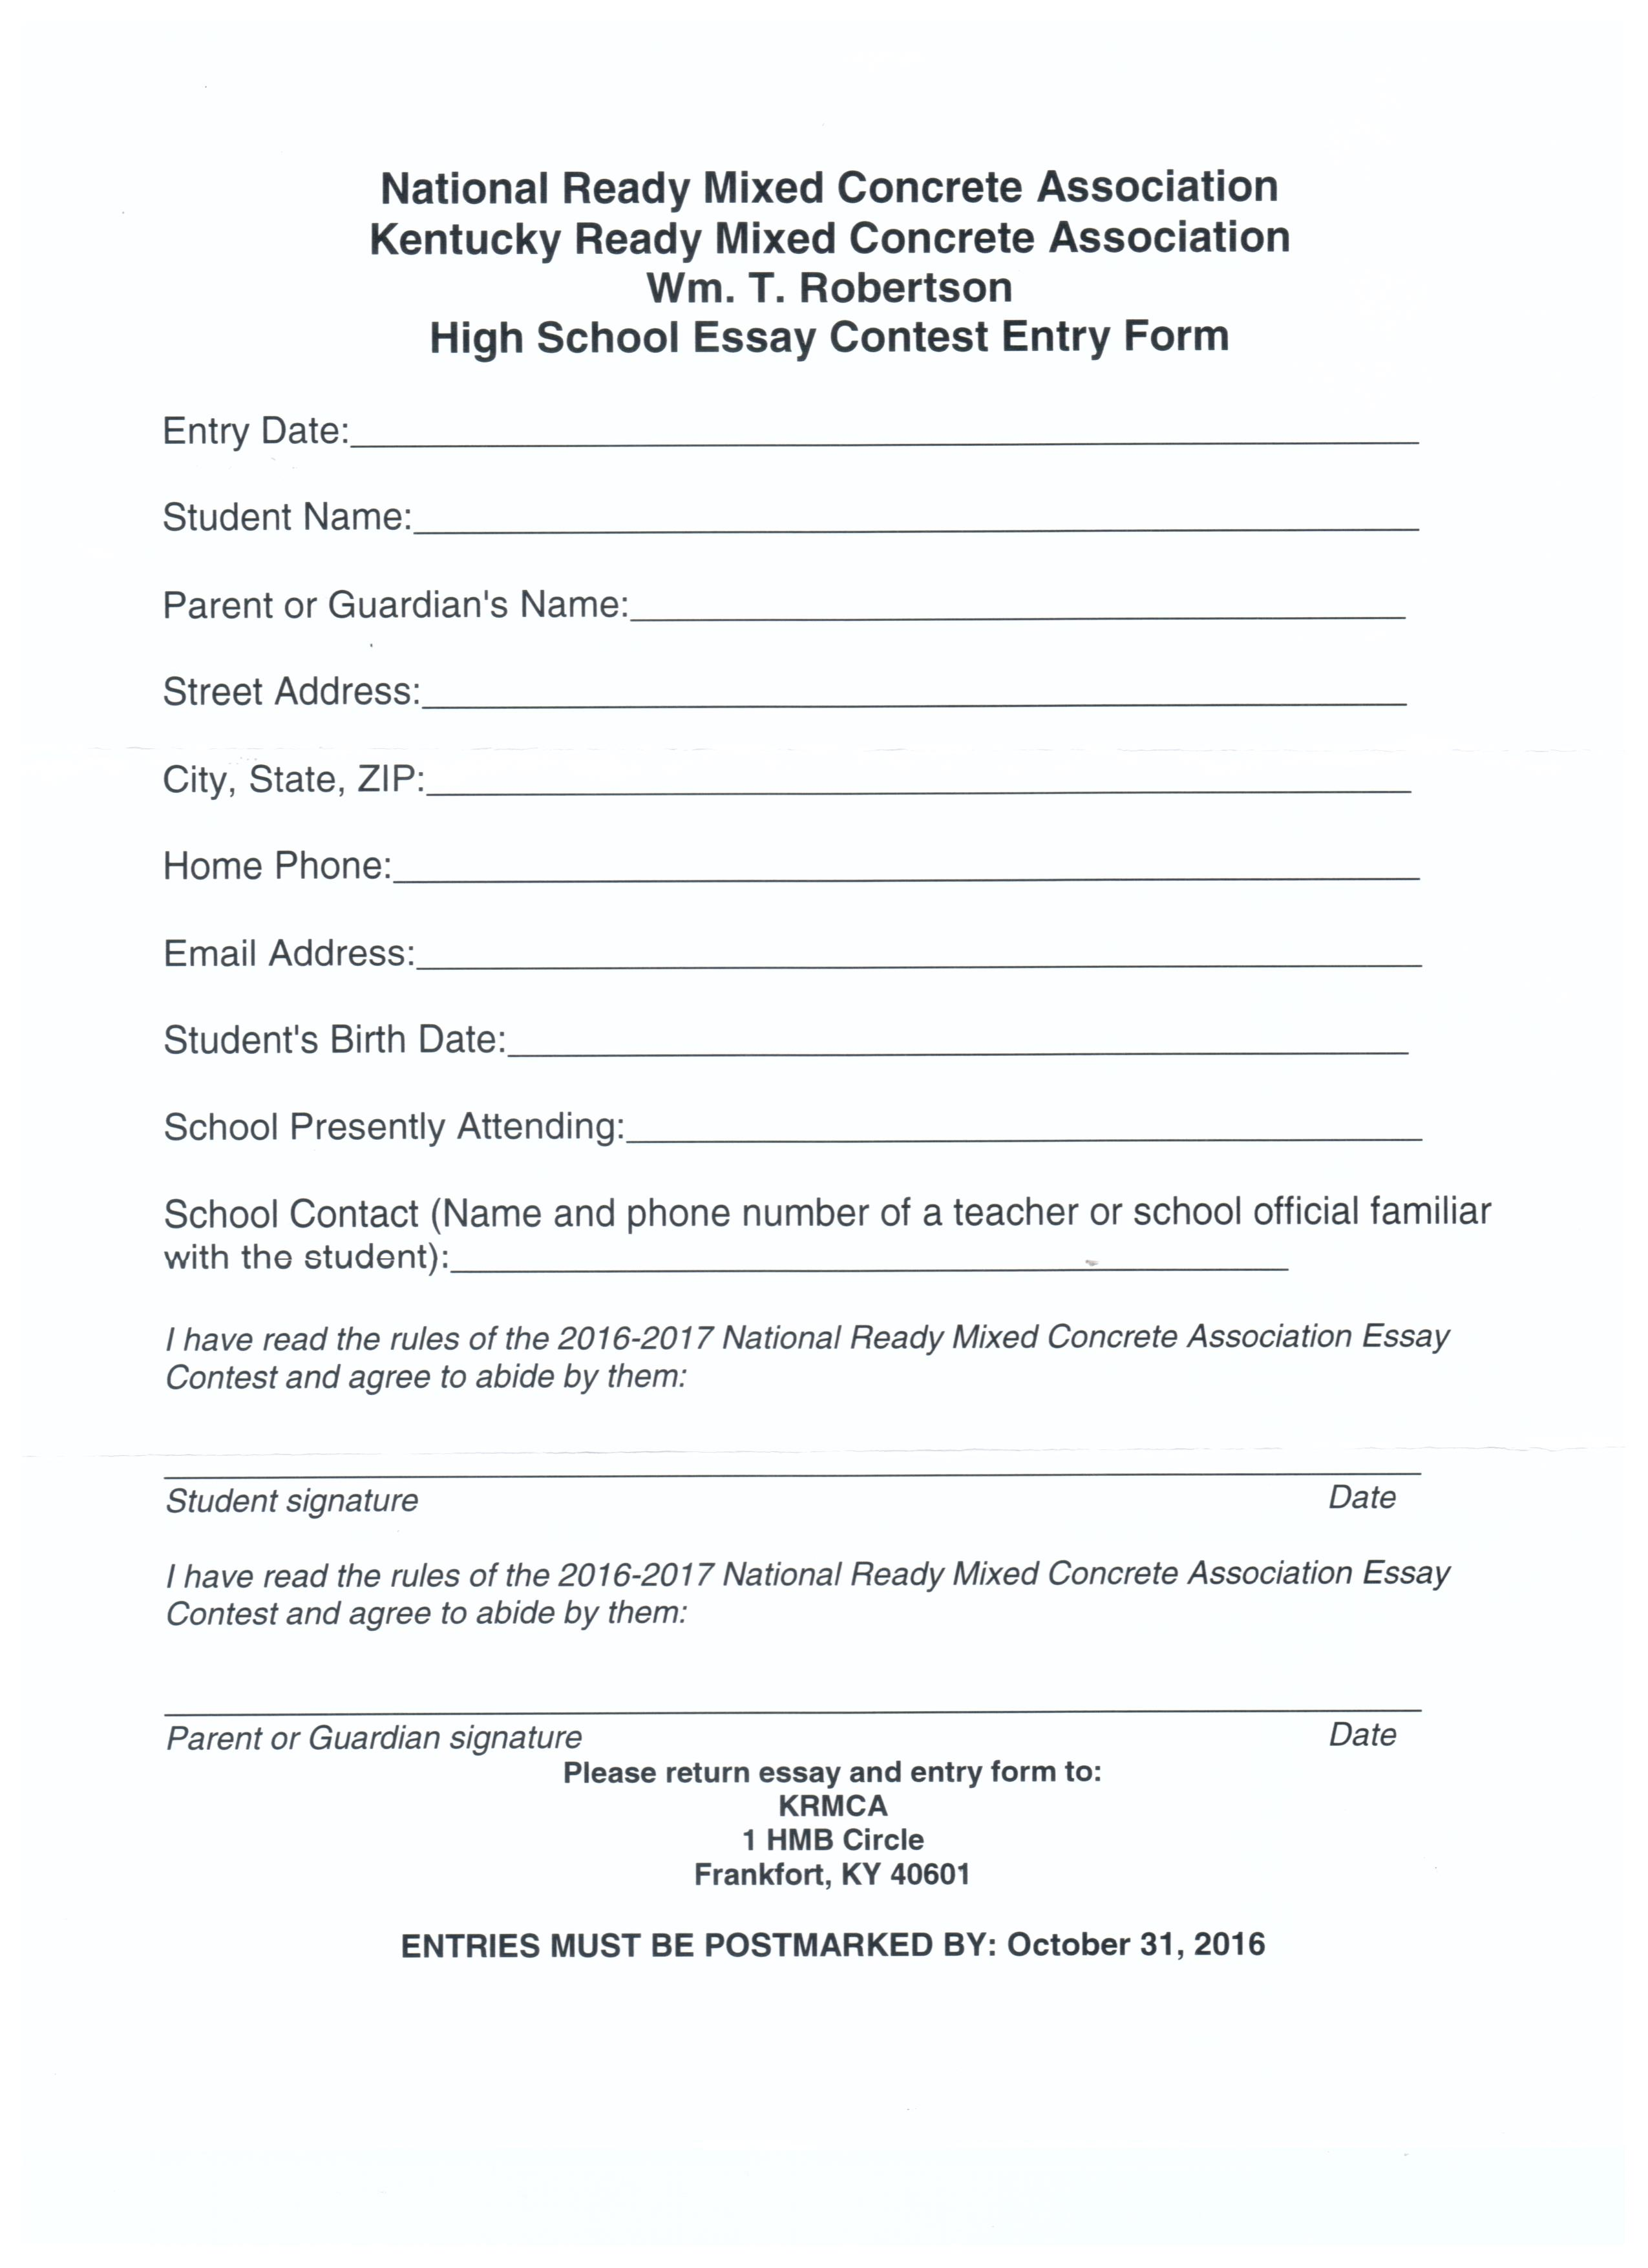 007 Essay Example Concrete Contest Pg 3 Financial Need Imposing Scholarship Describe Your For This Full